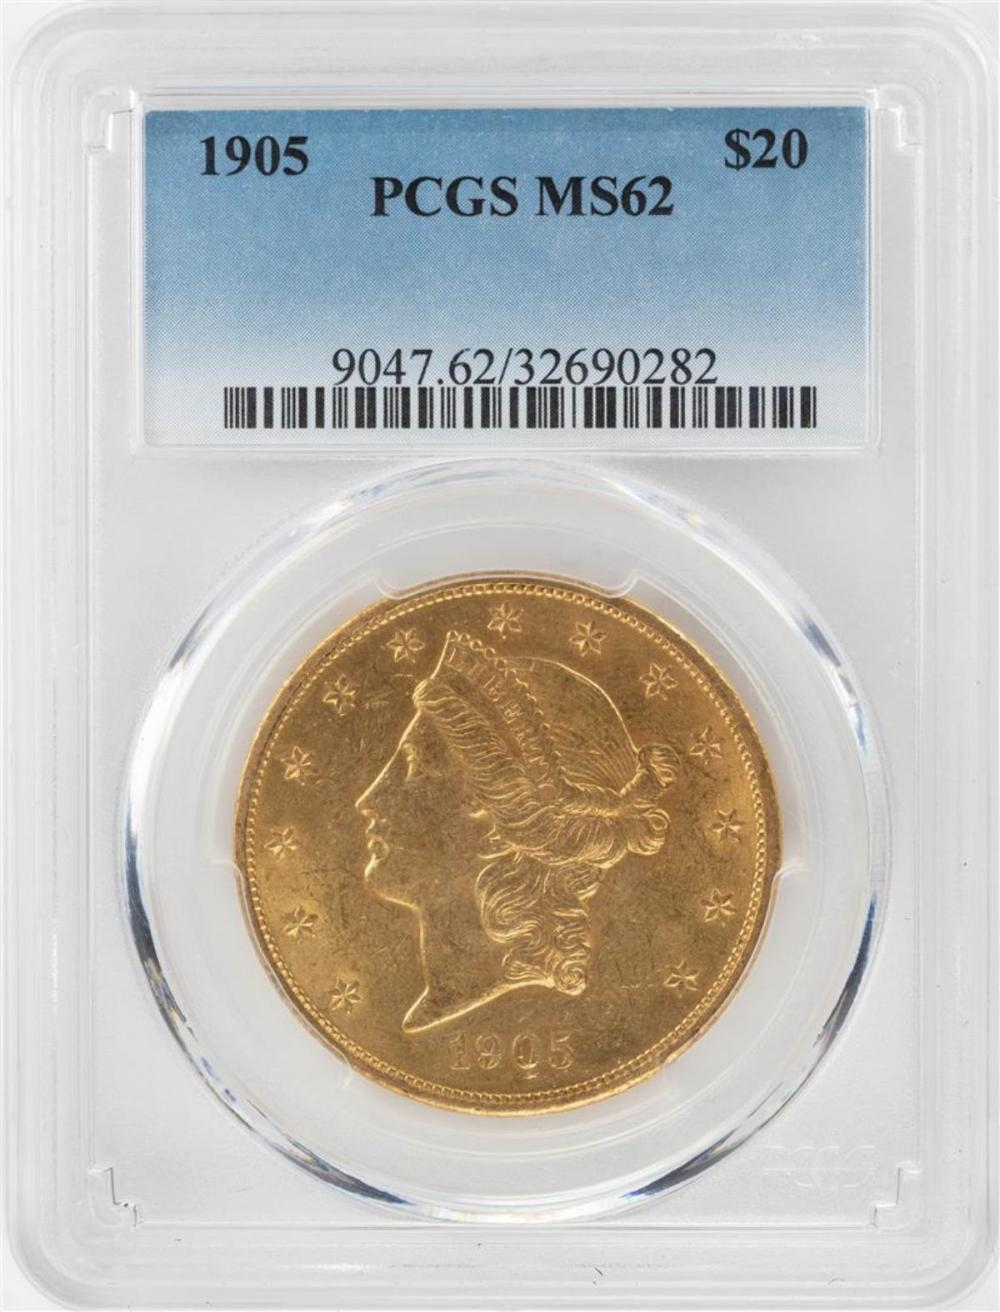 1905 $20 Liberty Head Double Eagle Gold Coin PCGS MS62